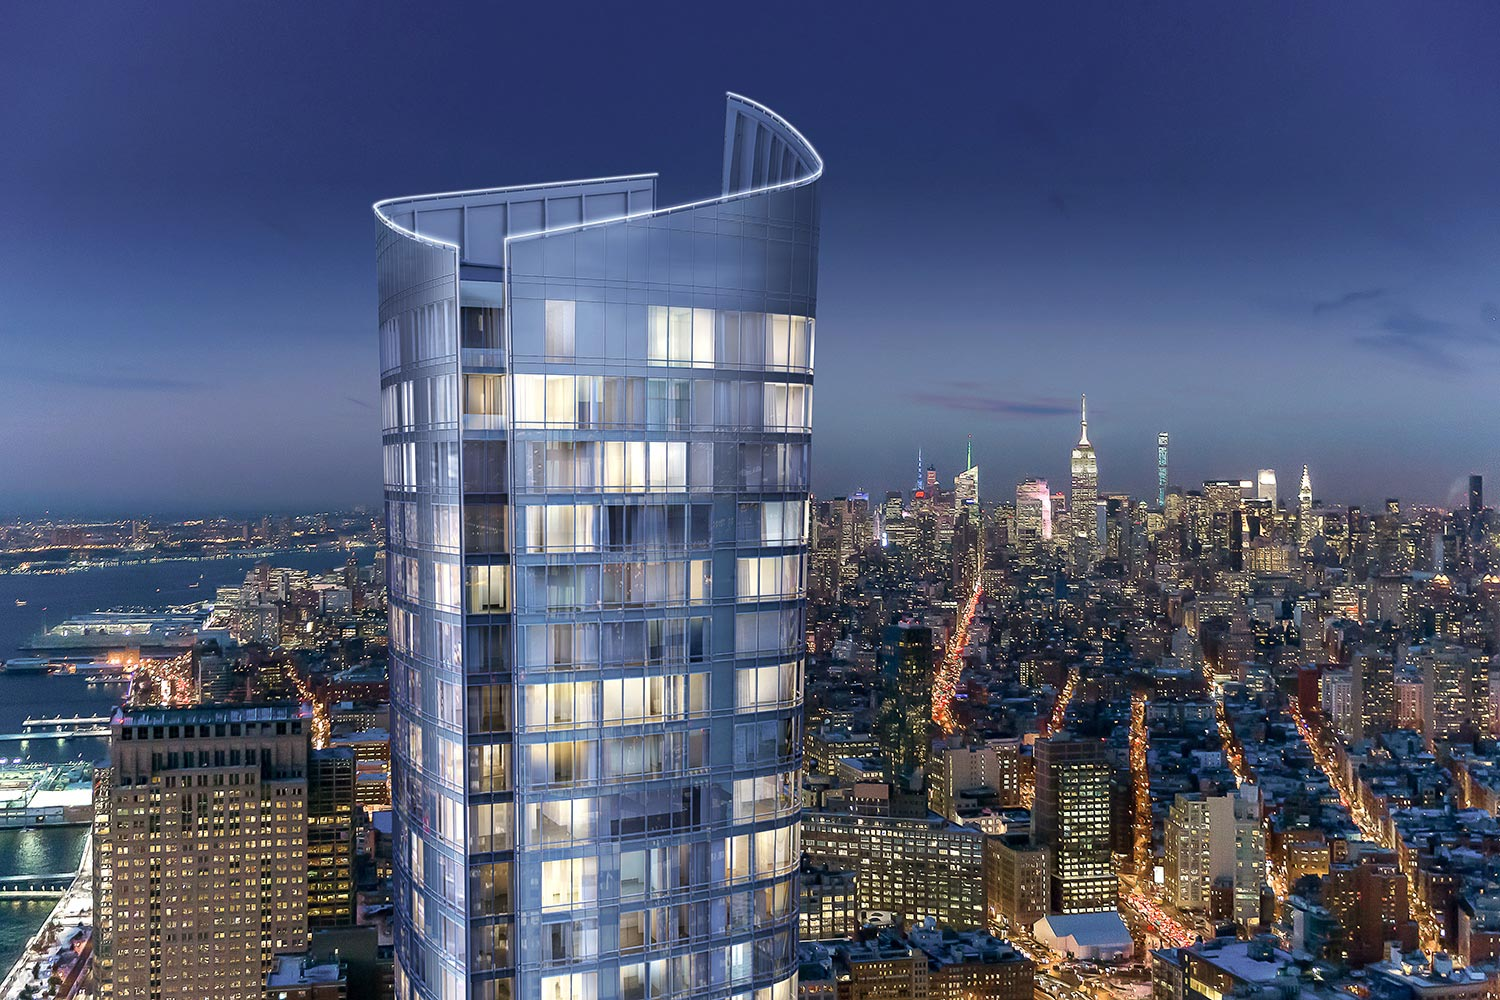 111 Murray Street, Kohn Pedersen Fox, KPF, Witkoff, Fisher Brothers, Tribeca condos